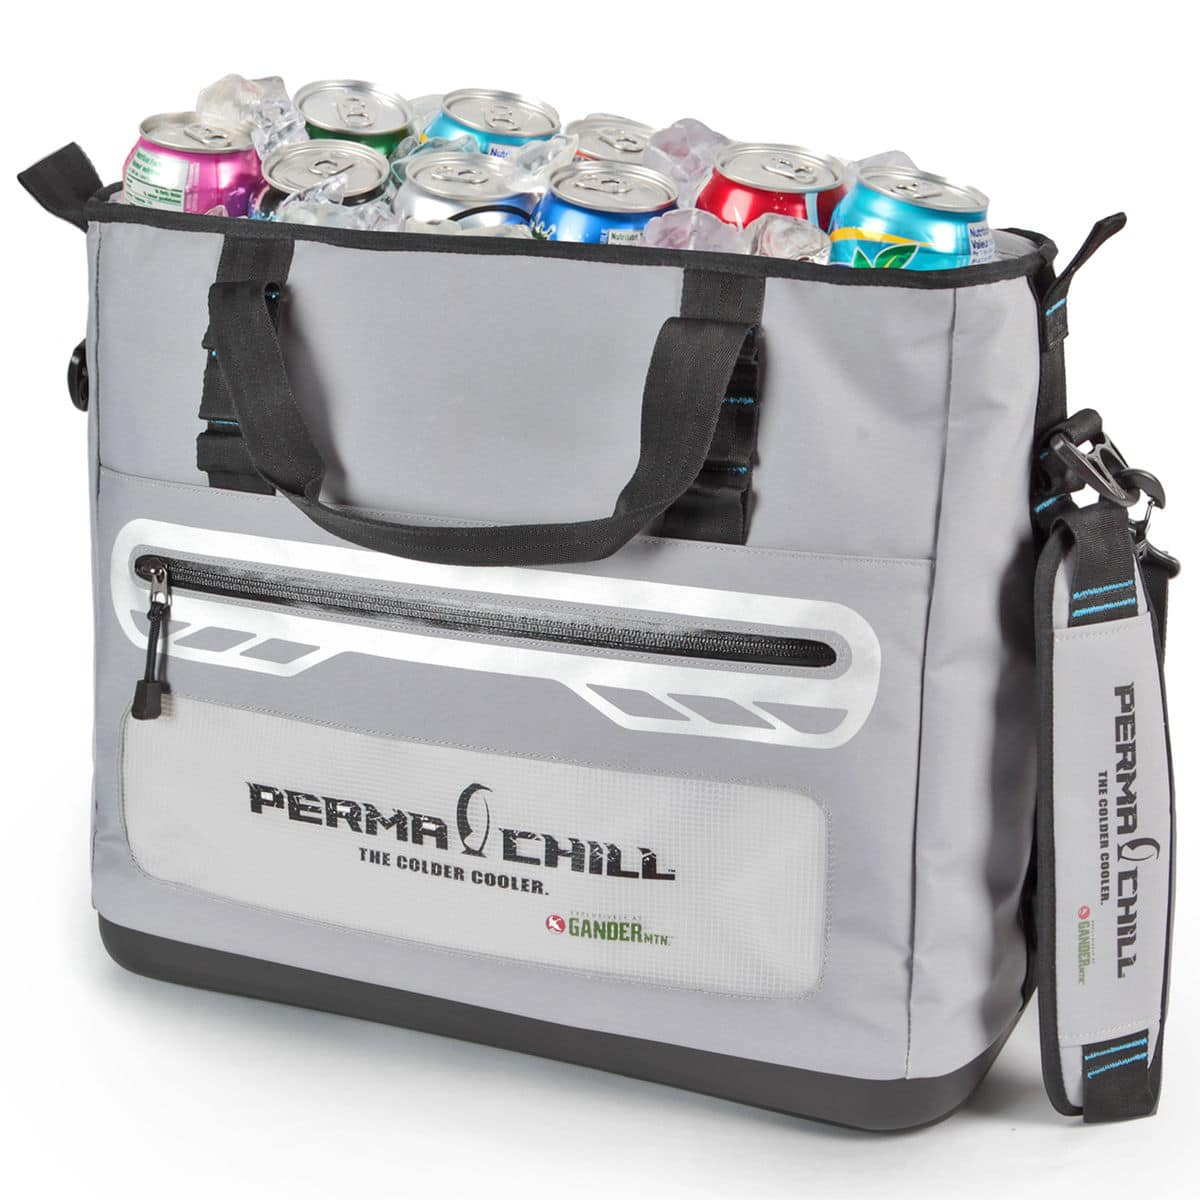 Perma-Chill 24 can soft cooler Gander Mountain $69.99 after coupon and free shipping normally $100